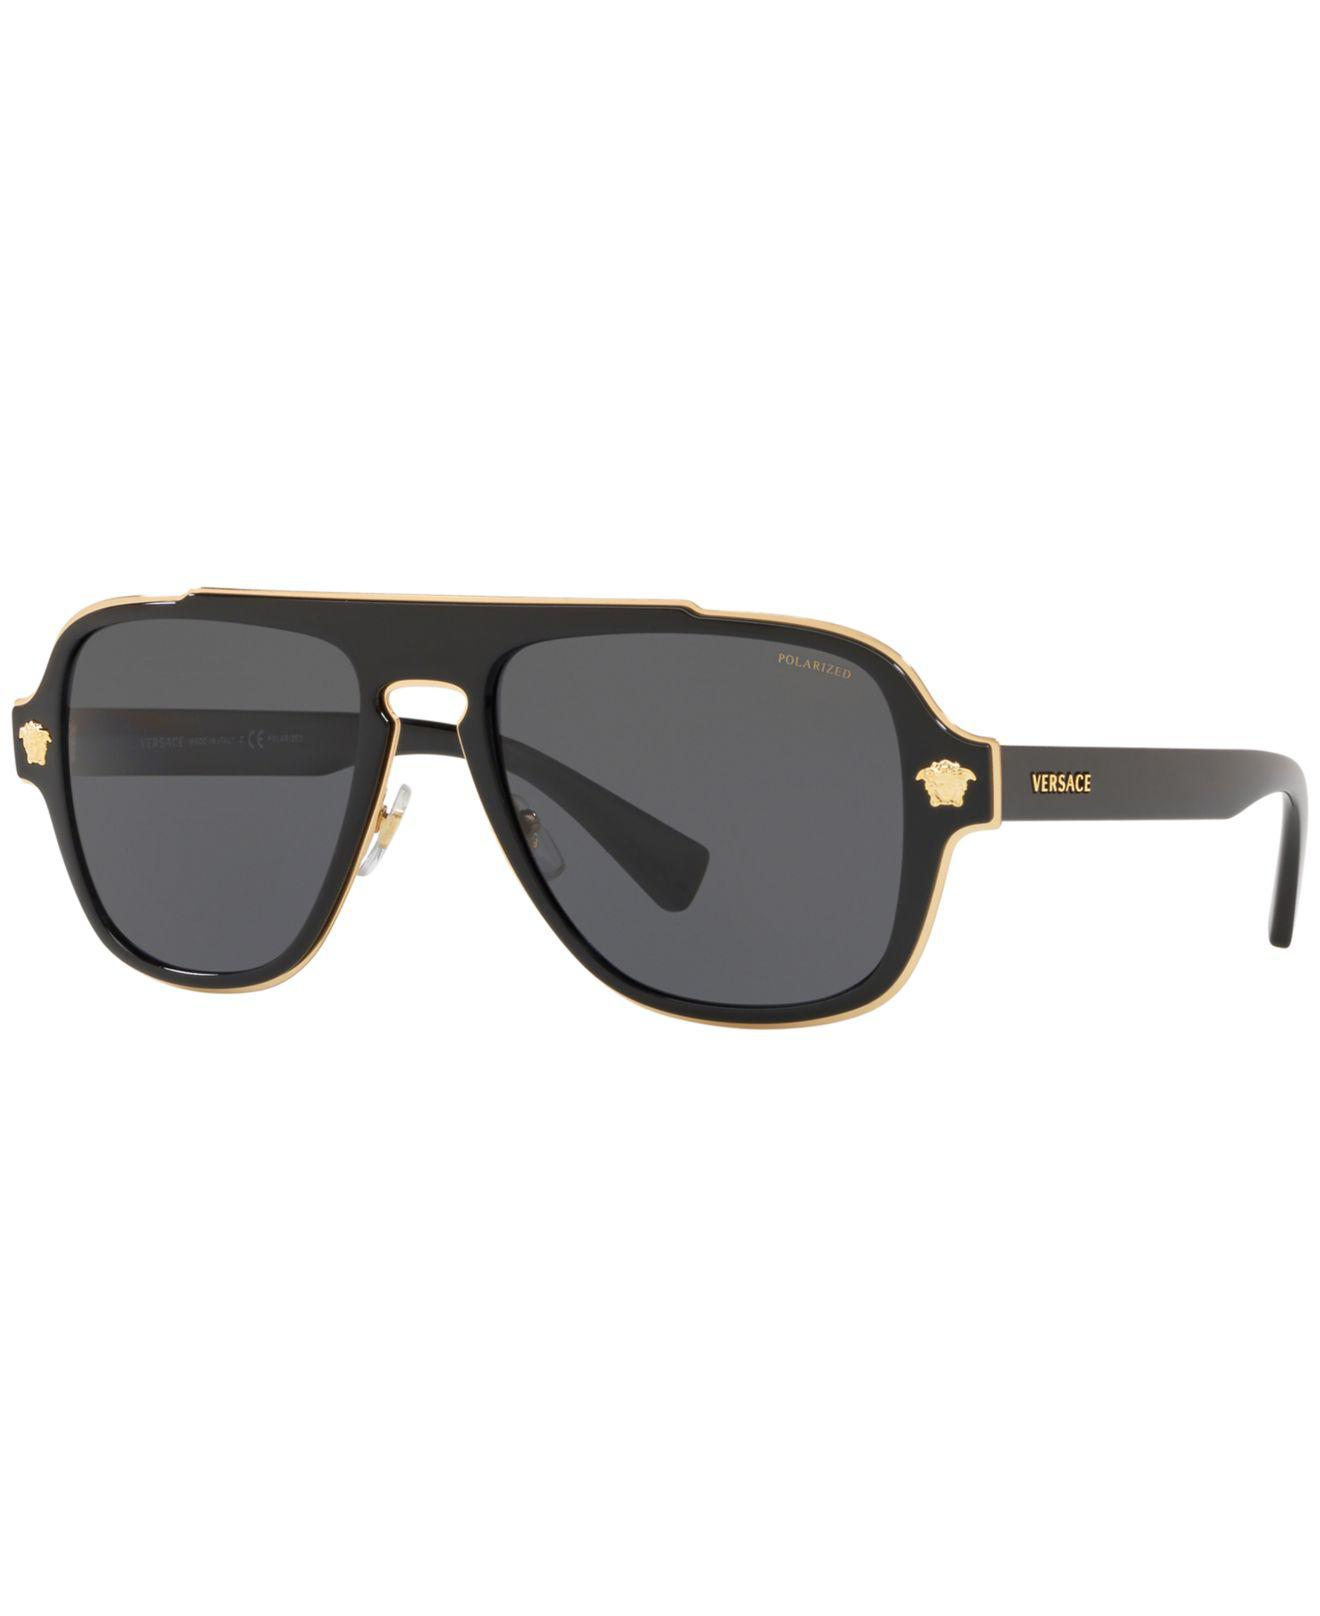 56c3dbced57f Versace - Multicolor Ve2199 for Men - Lyst. View fullscreen